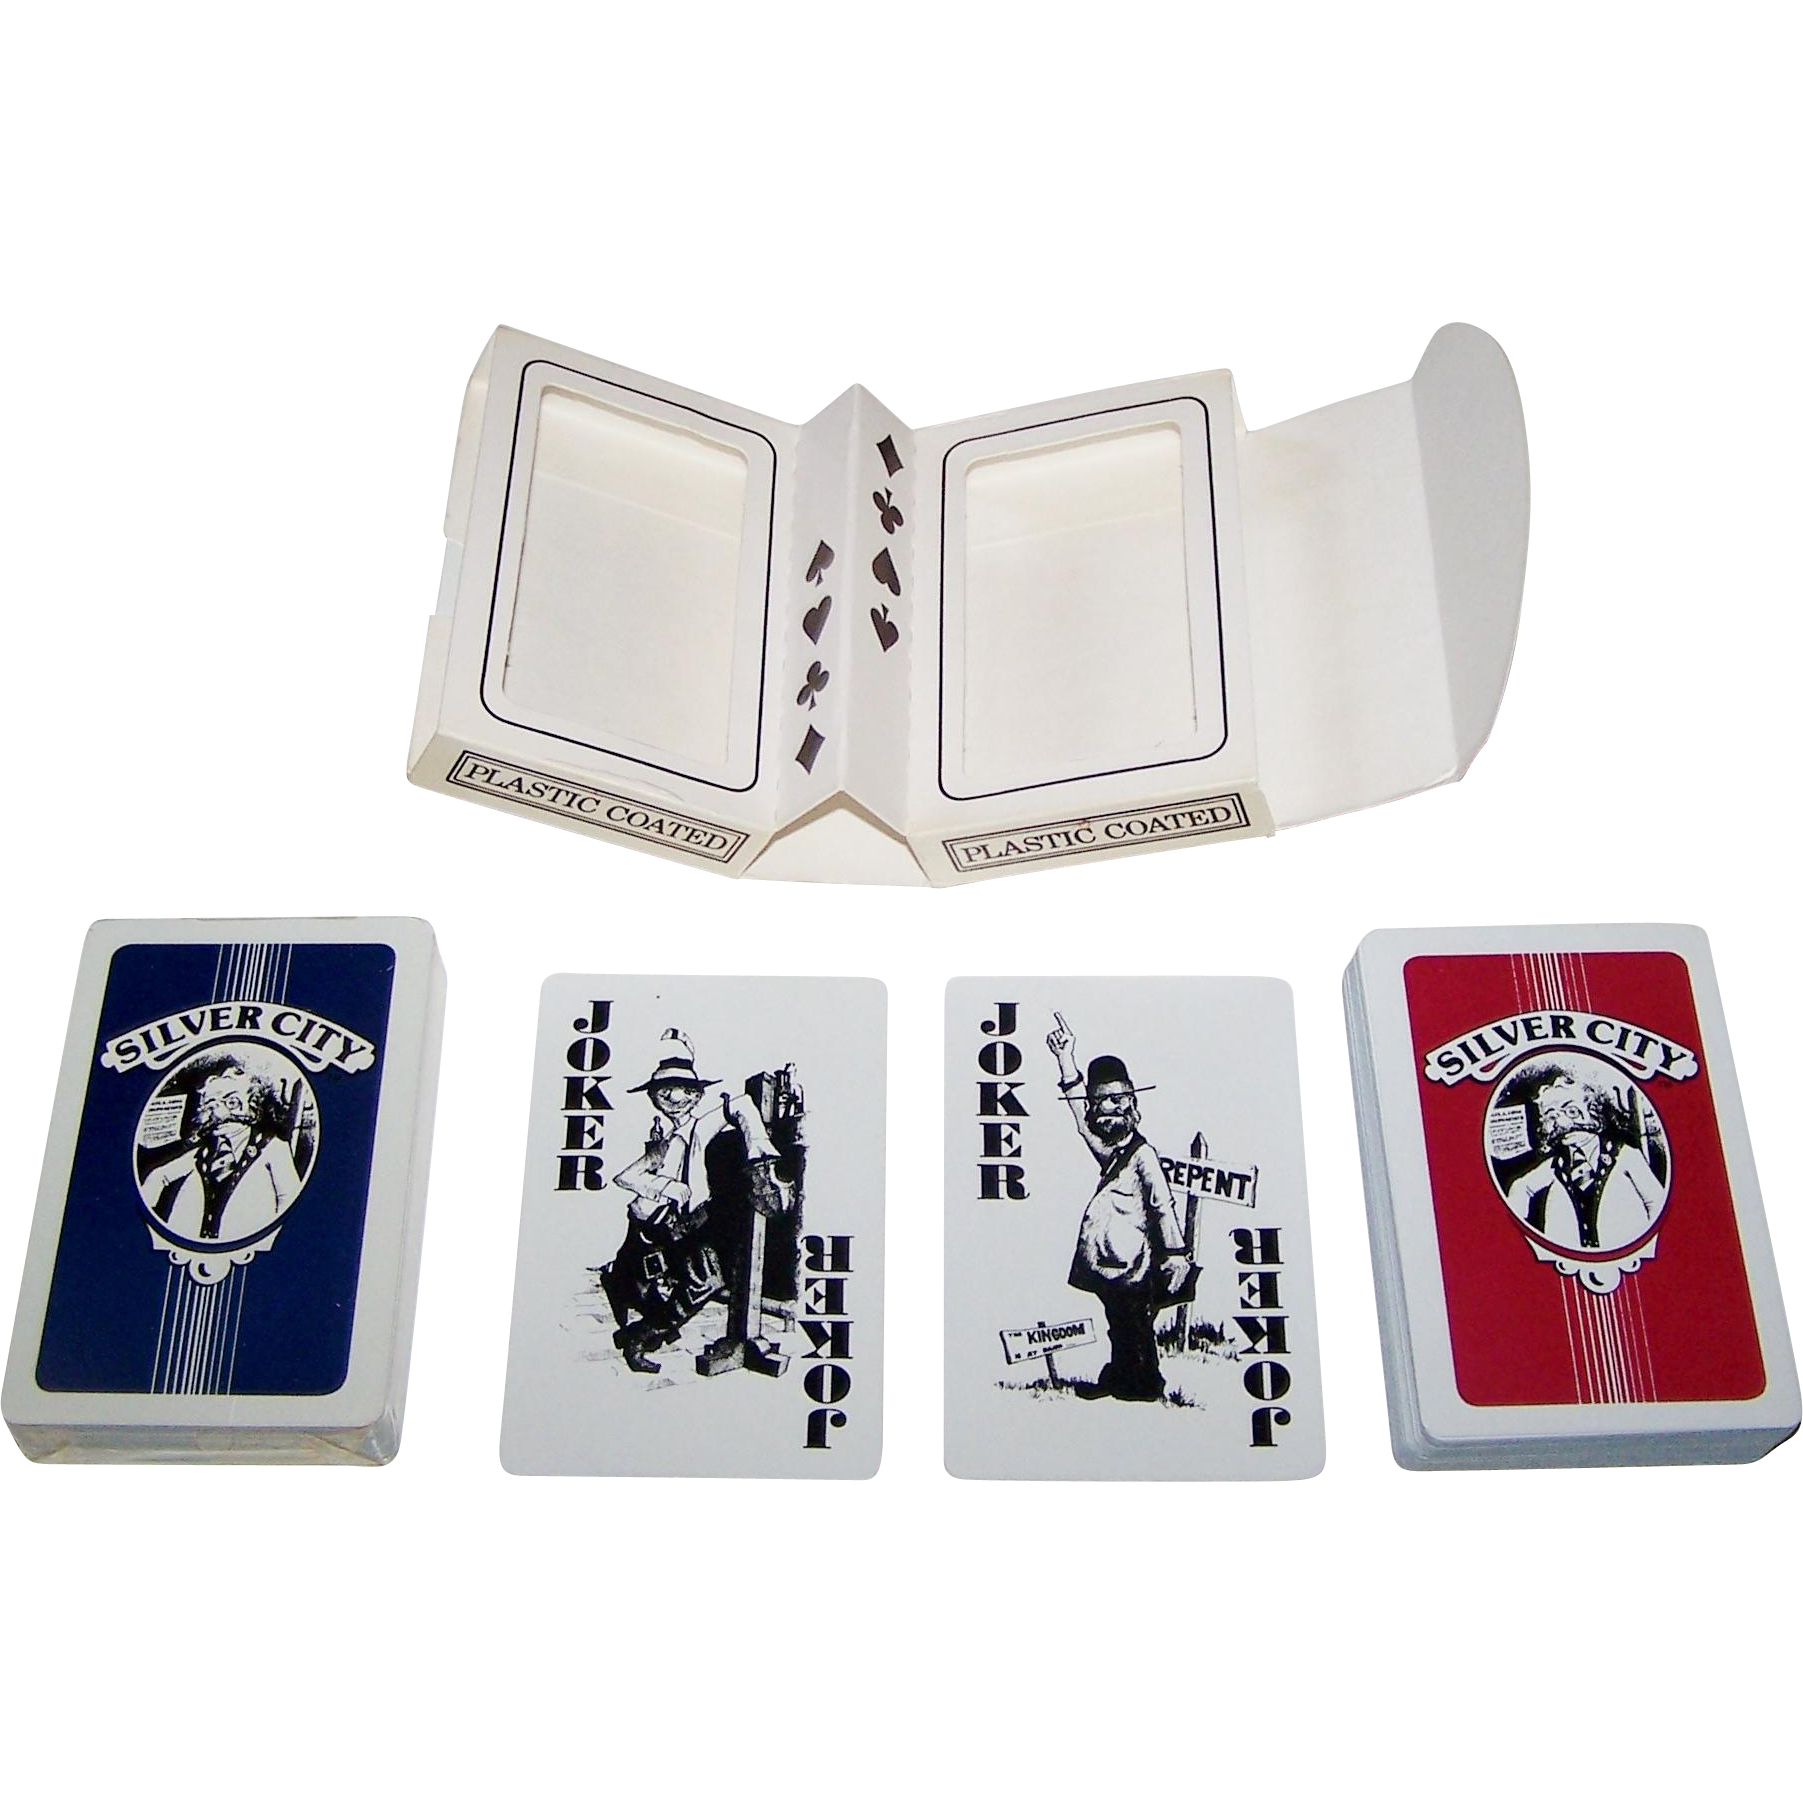 "Double Deck Mystic Games, Inc. ""Silver City"" Playing Cards, Maker Unknown, Cartoonist Unknown, c.1982"